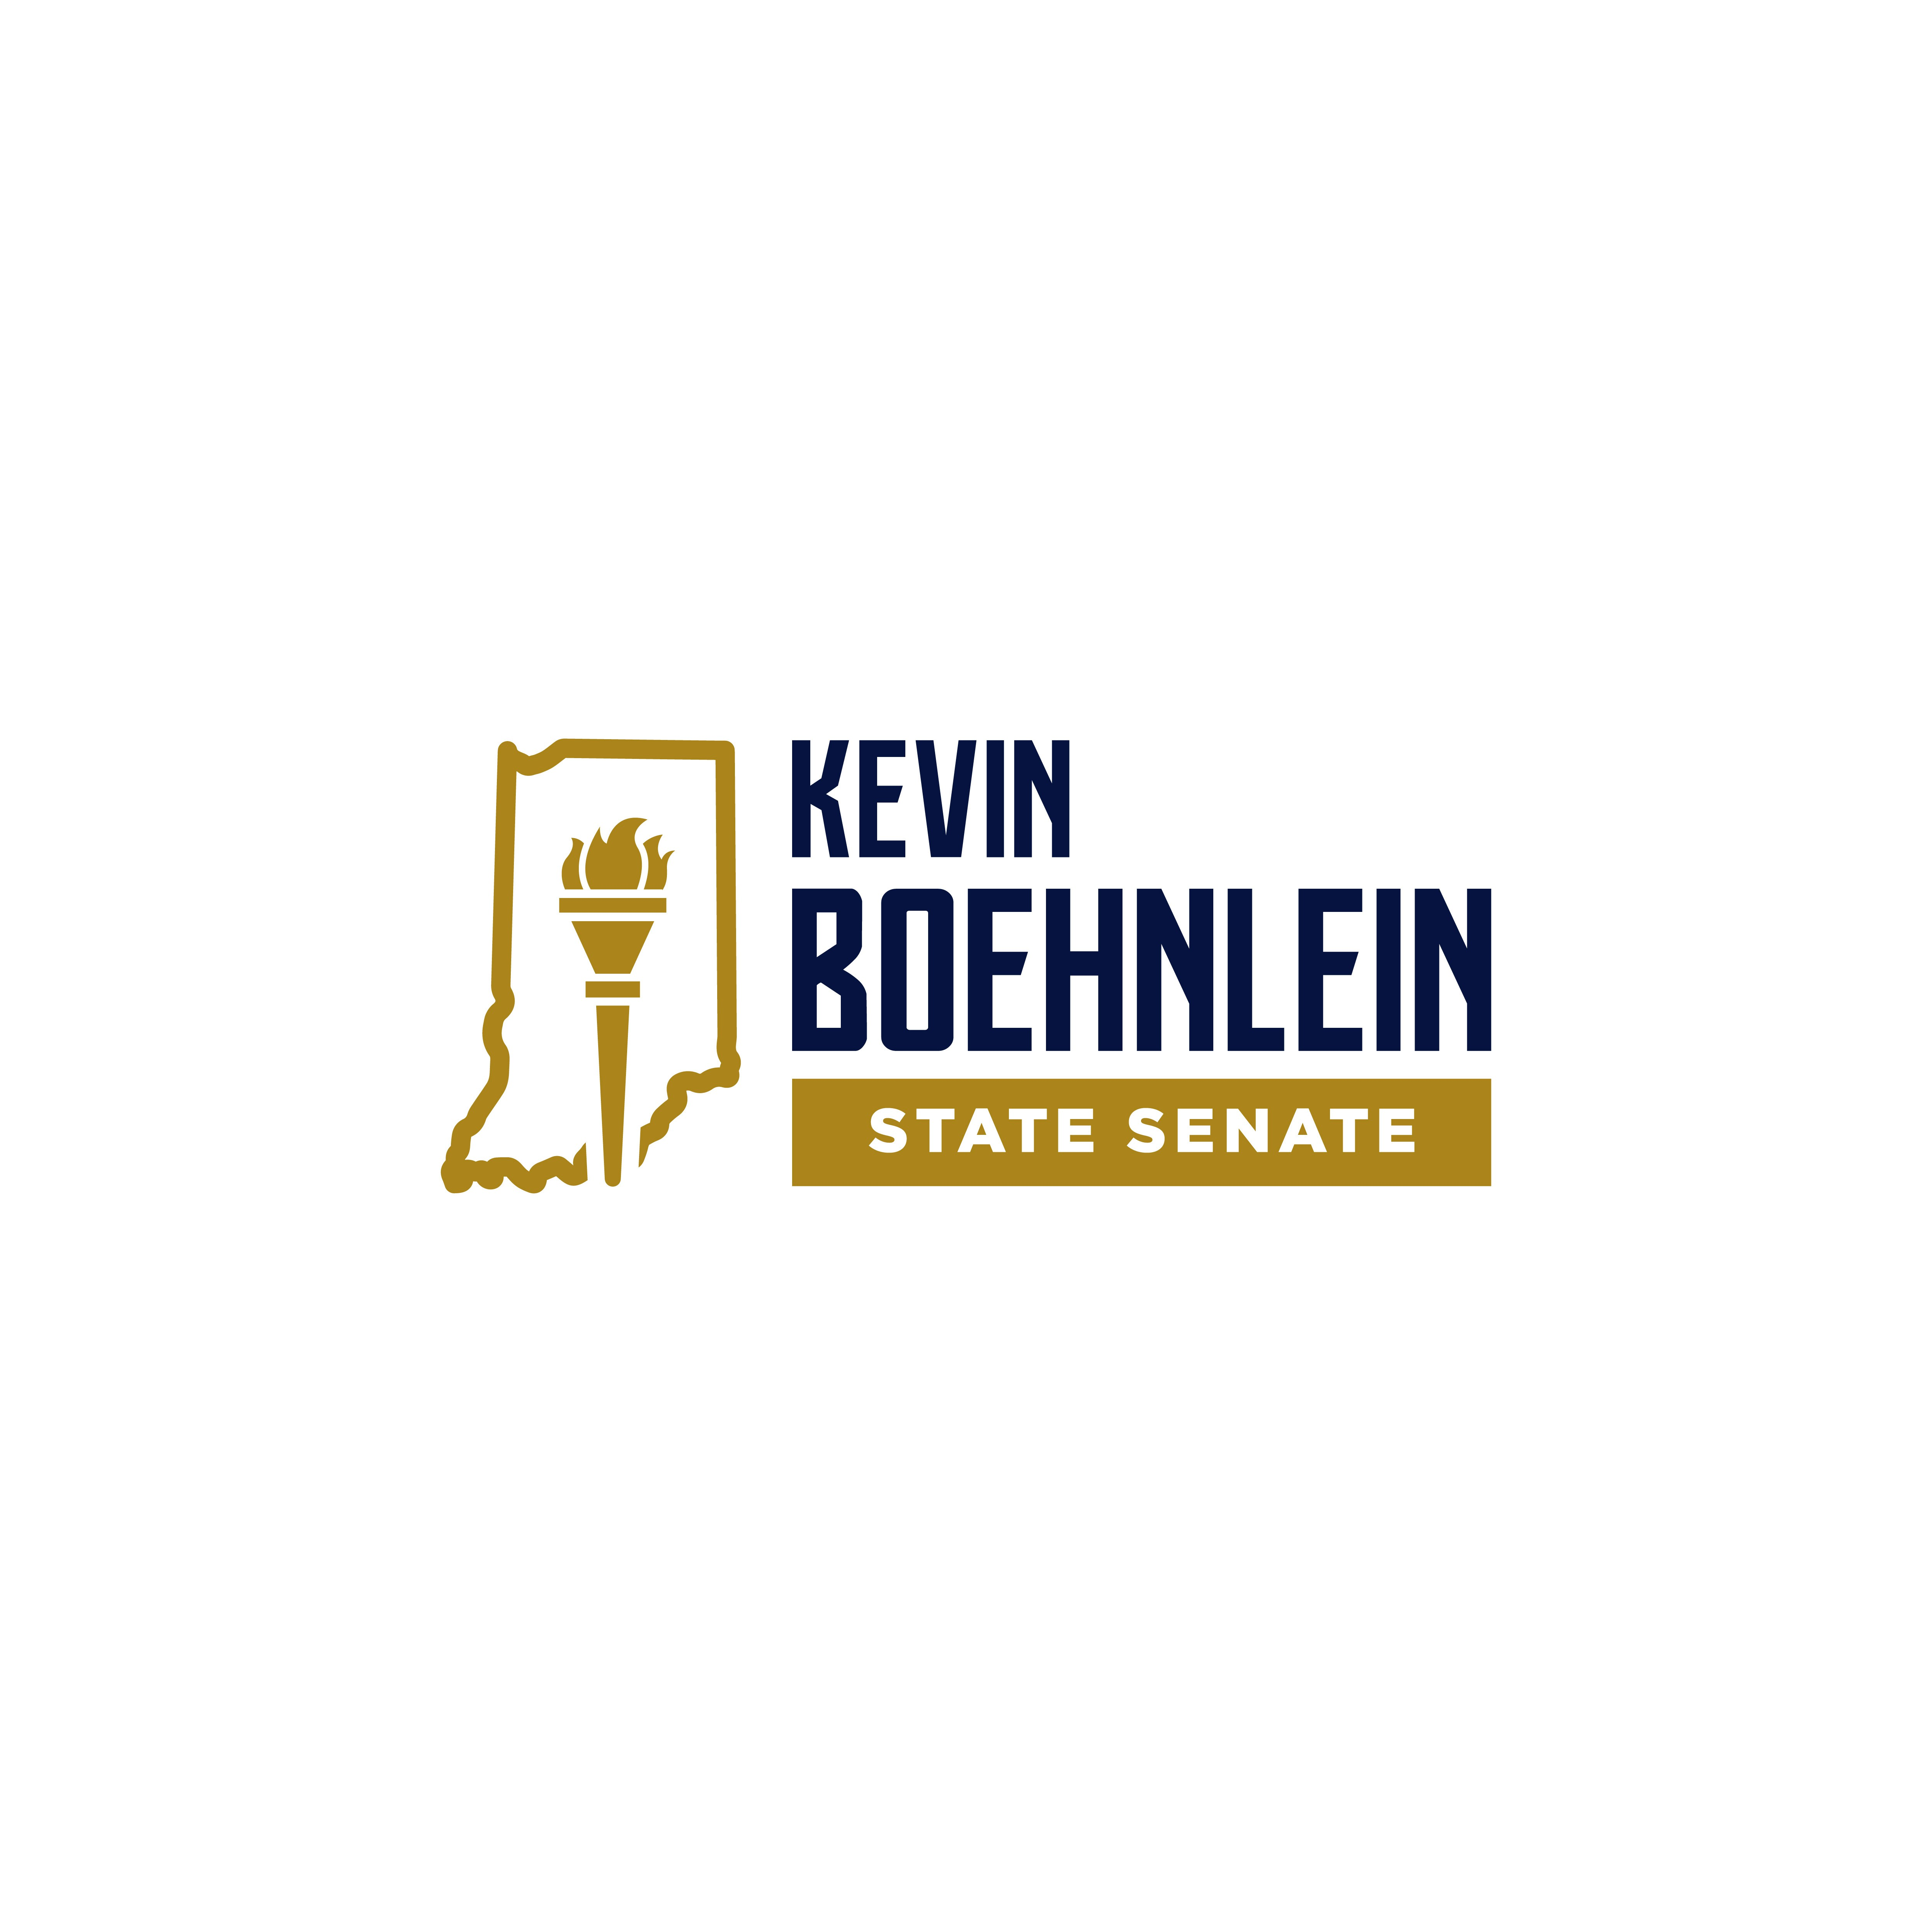 Clean design with touch of personality to appeal to Indiana voters